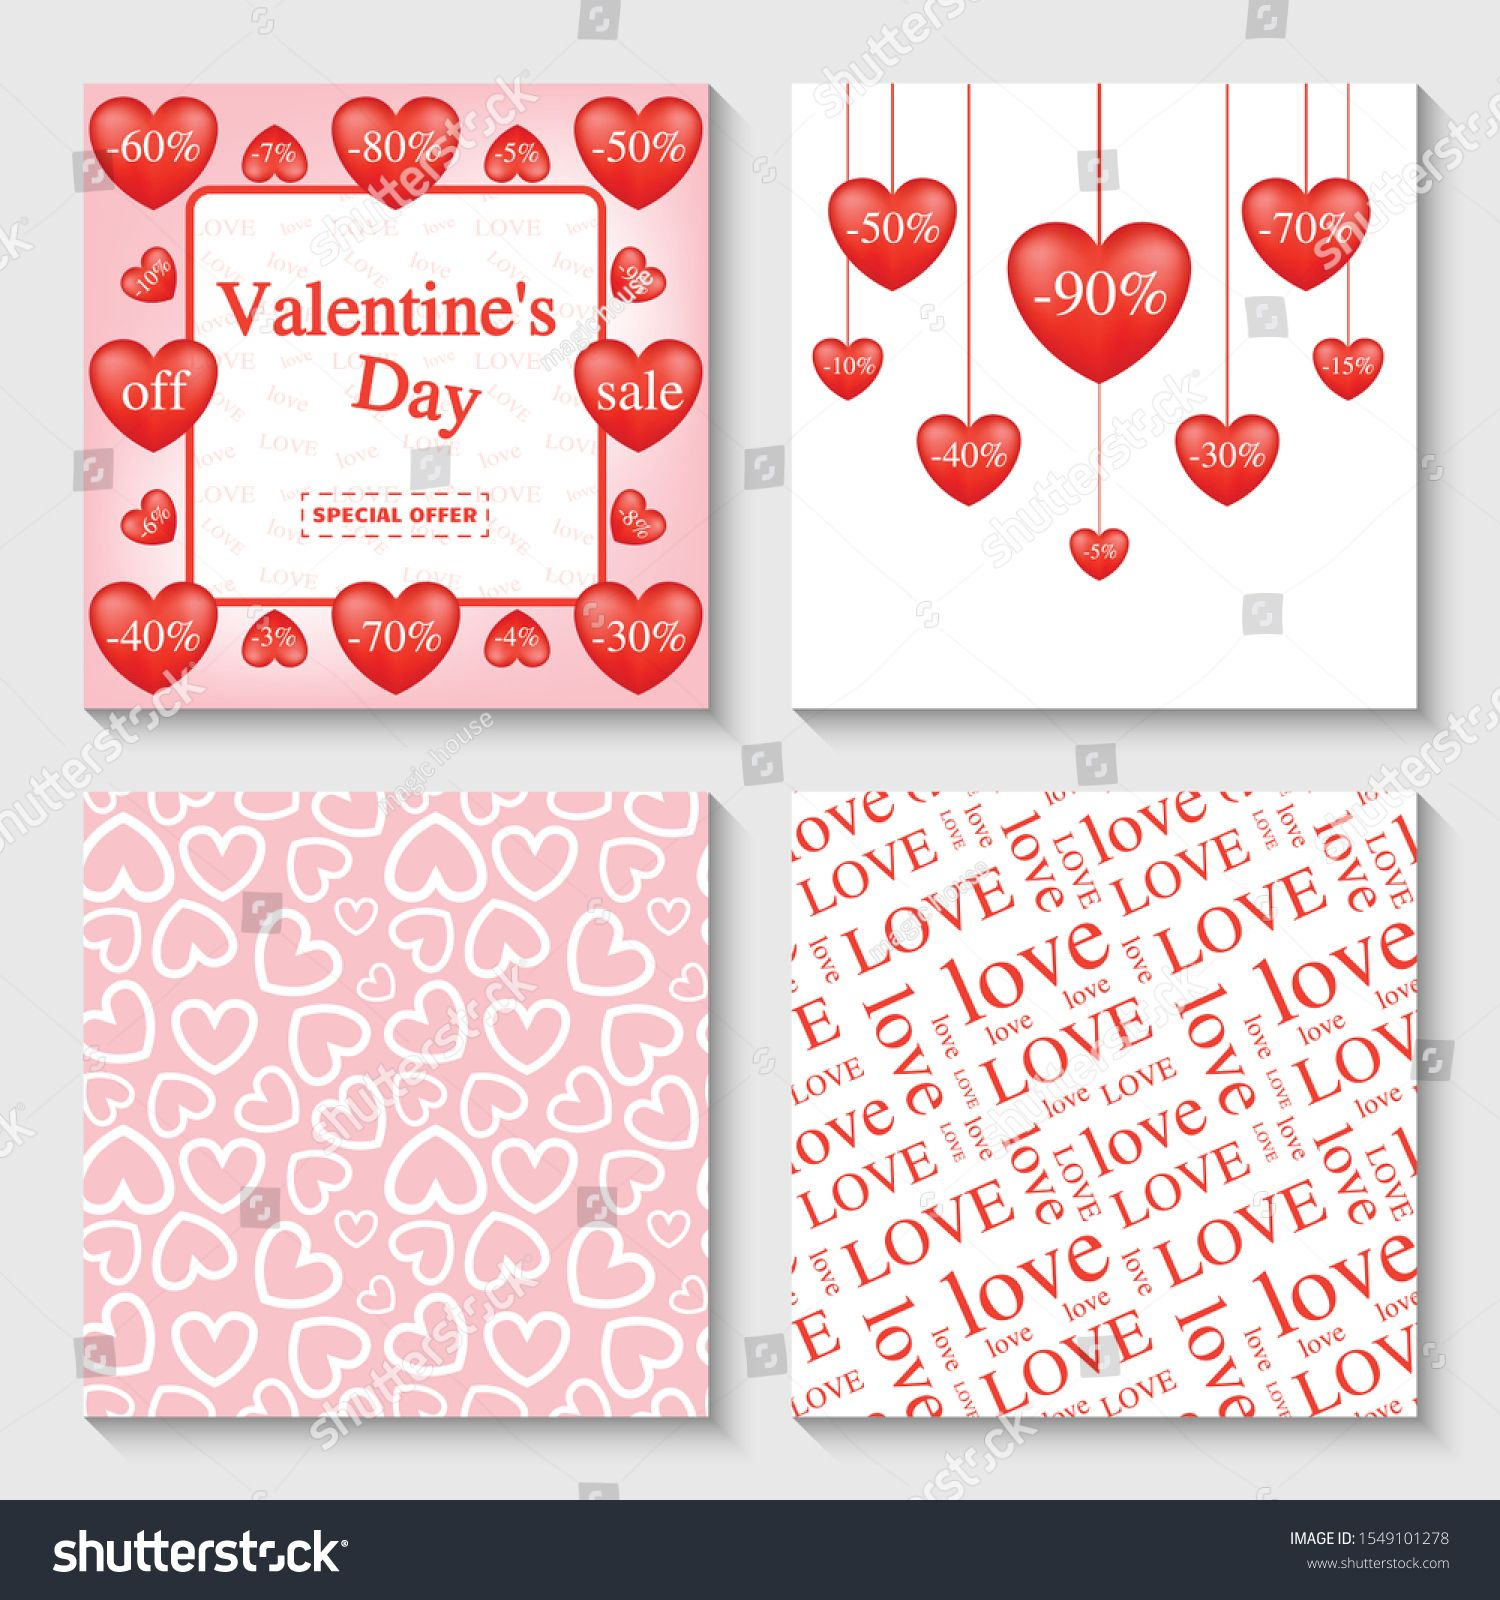 Set For Valentine S Day Discount Template For Attracting Customers Endless Love Patterns For Packaging Gifts Design For Invitations In 2020 Valentines Cards Templates